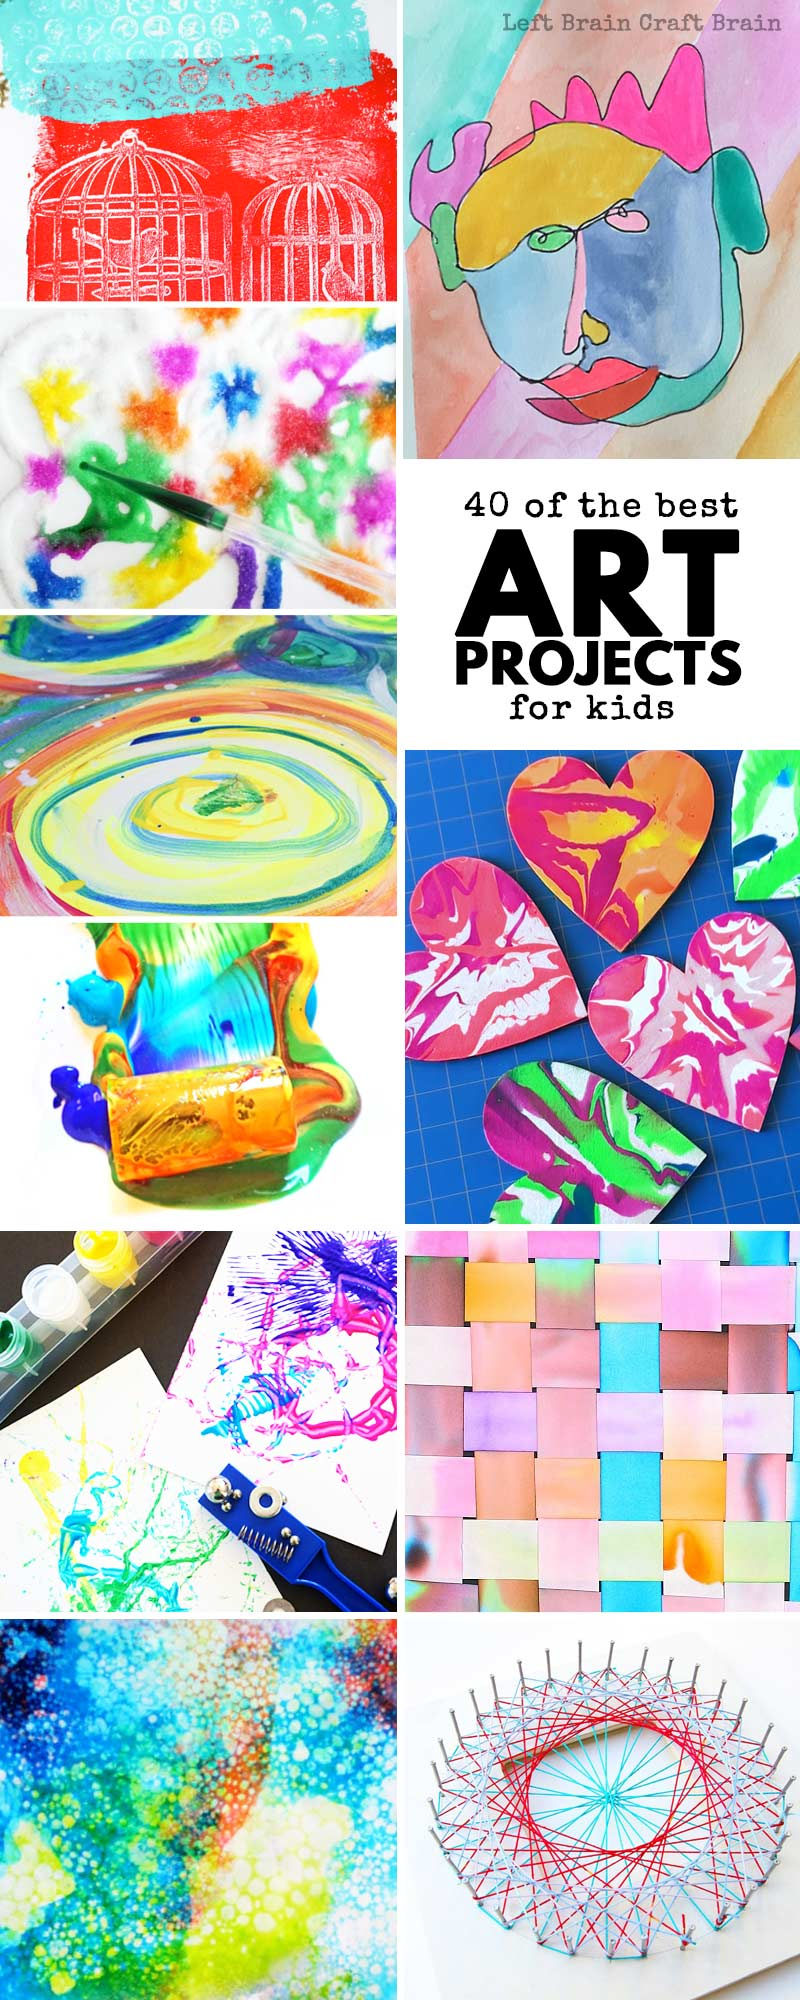 Art Craft Ideas 40 Of The Best Art Projects For Kids Left Brain Craft Brain